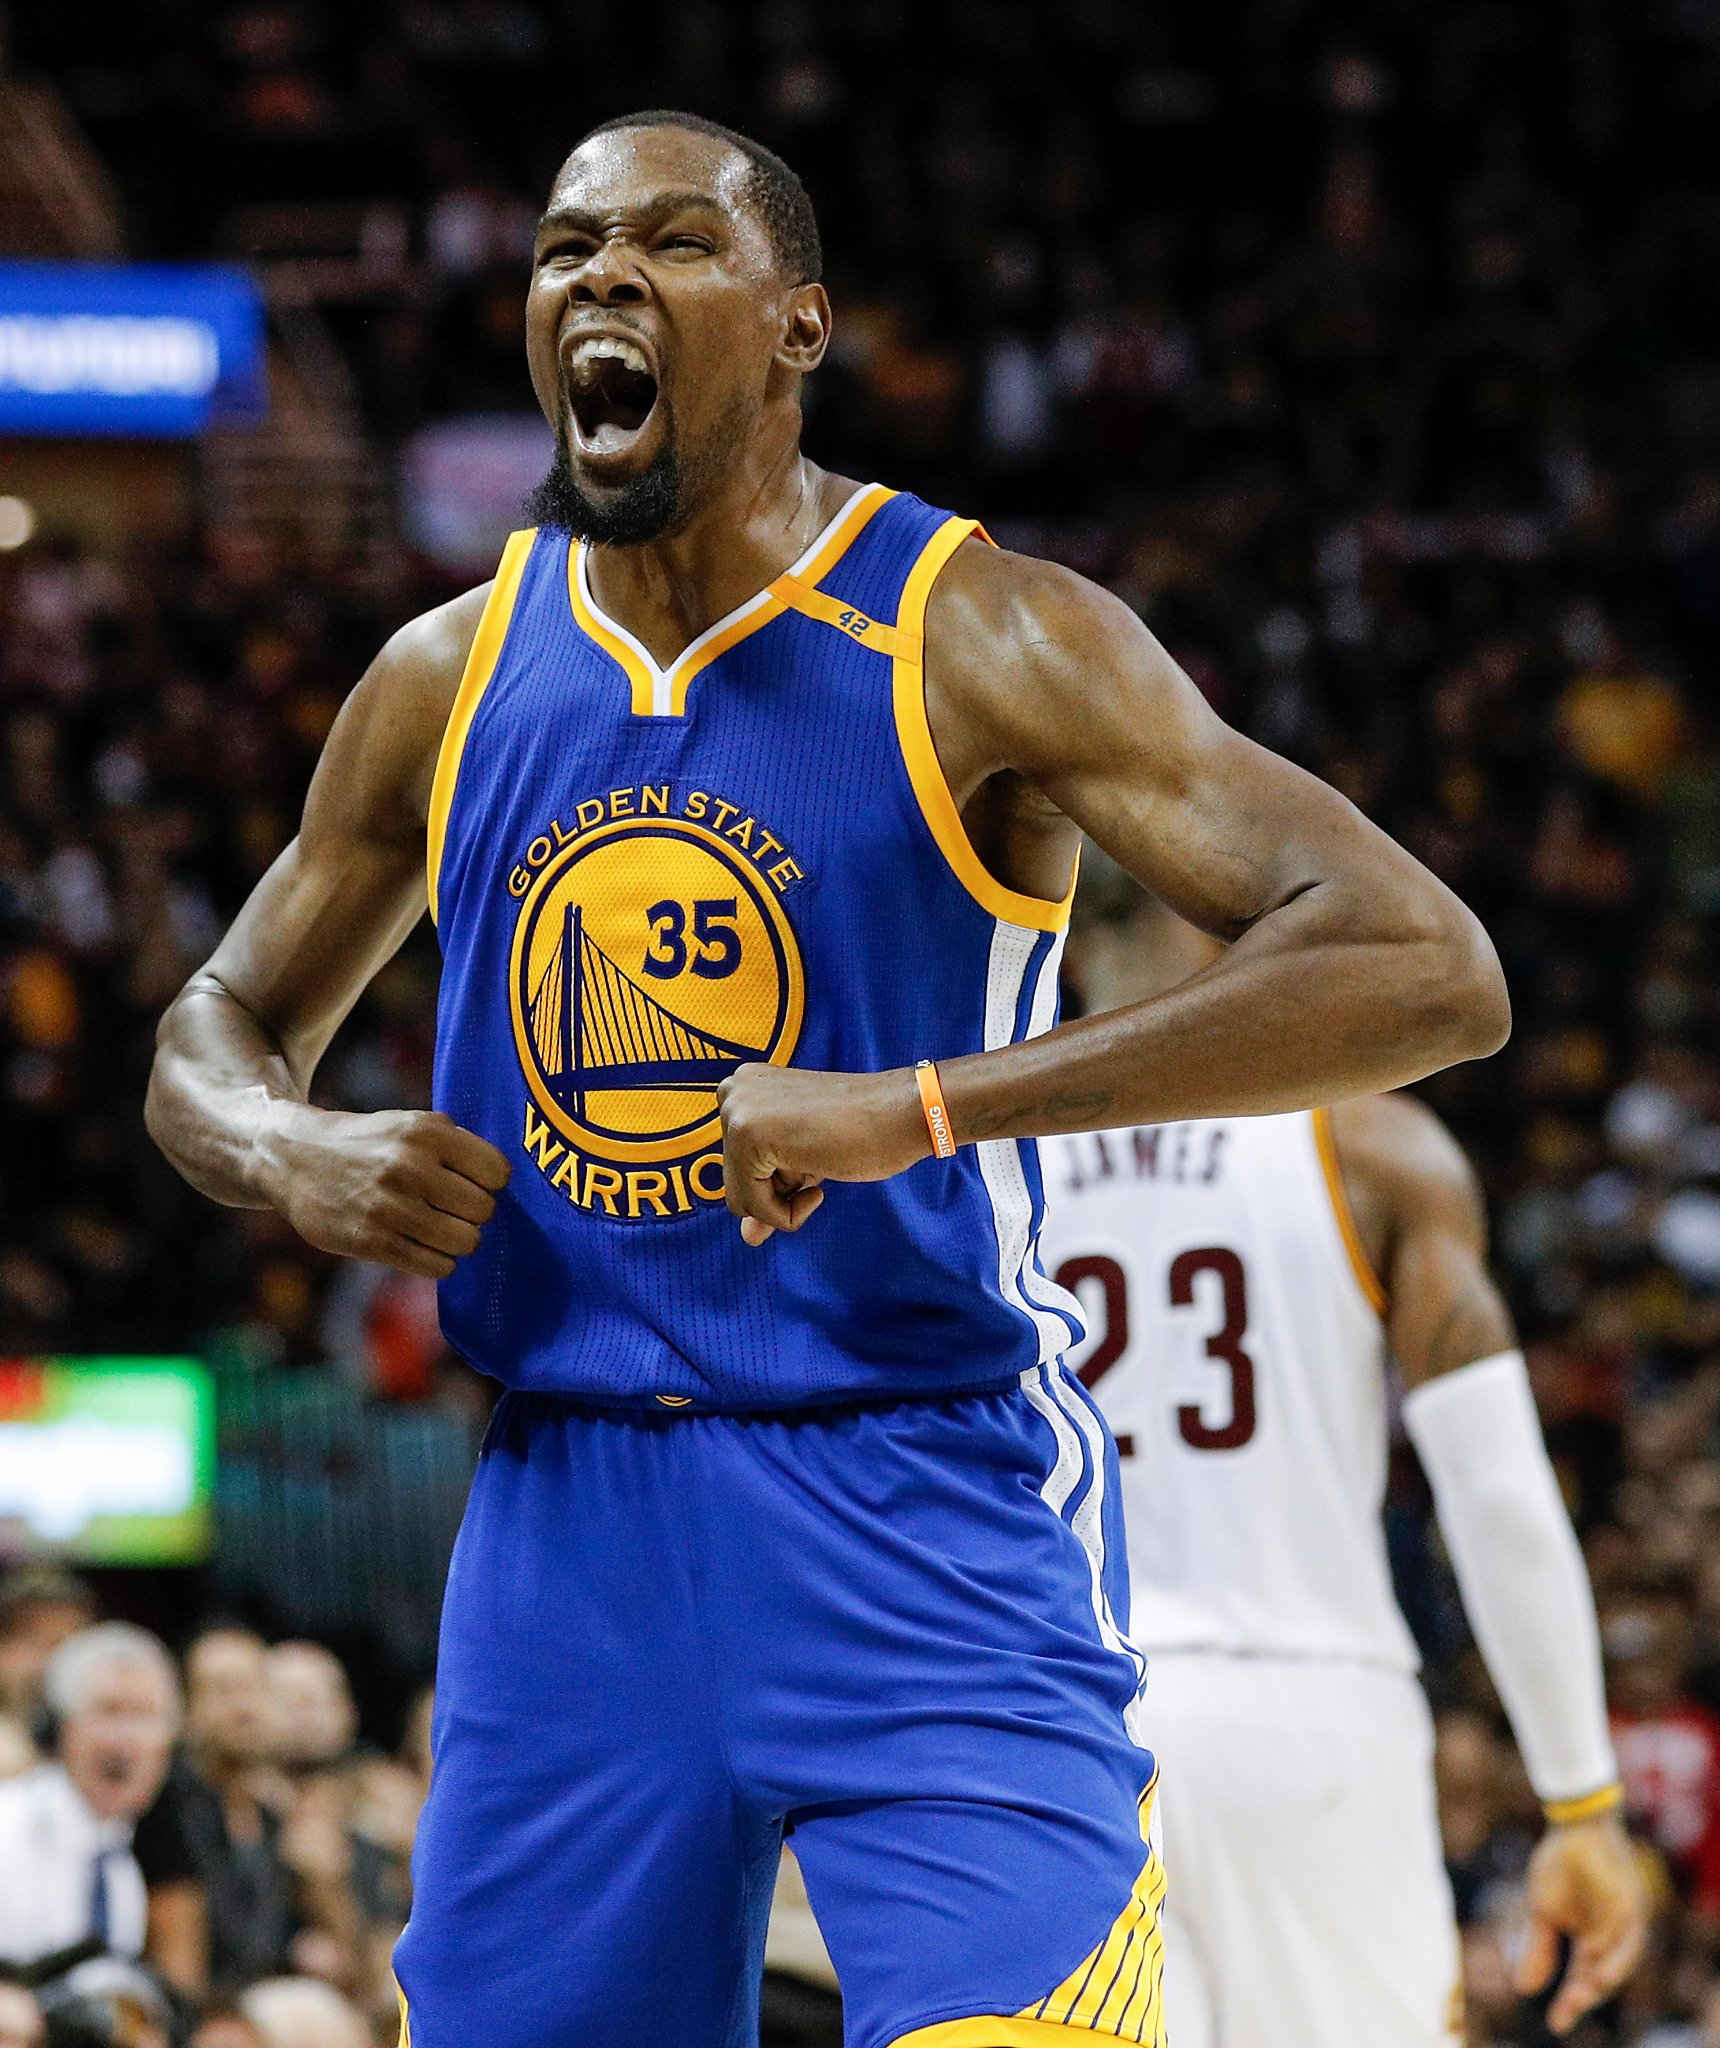 Sensitivity Aside, Focus On Kevin Durant's Play